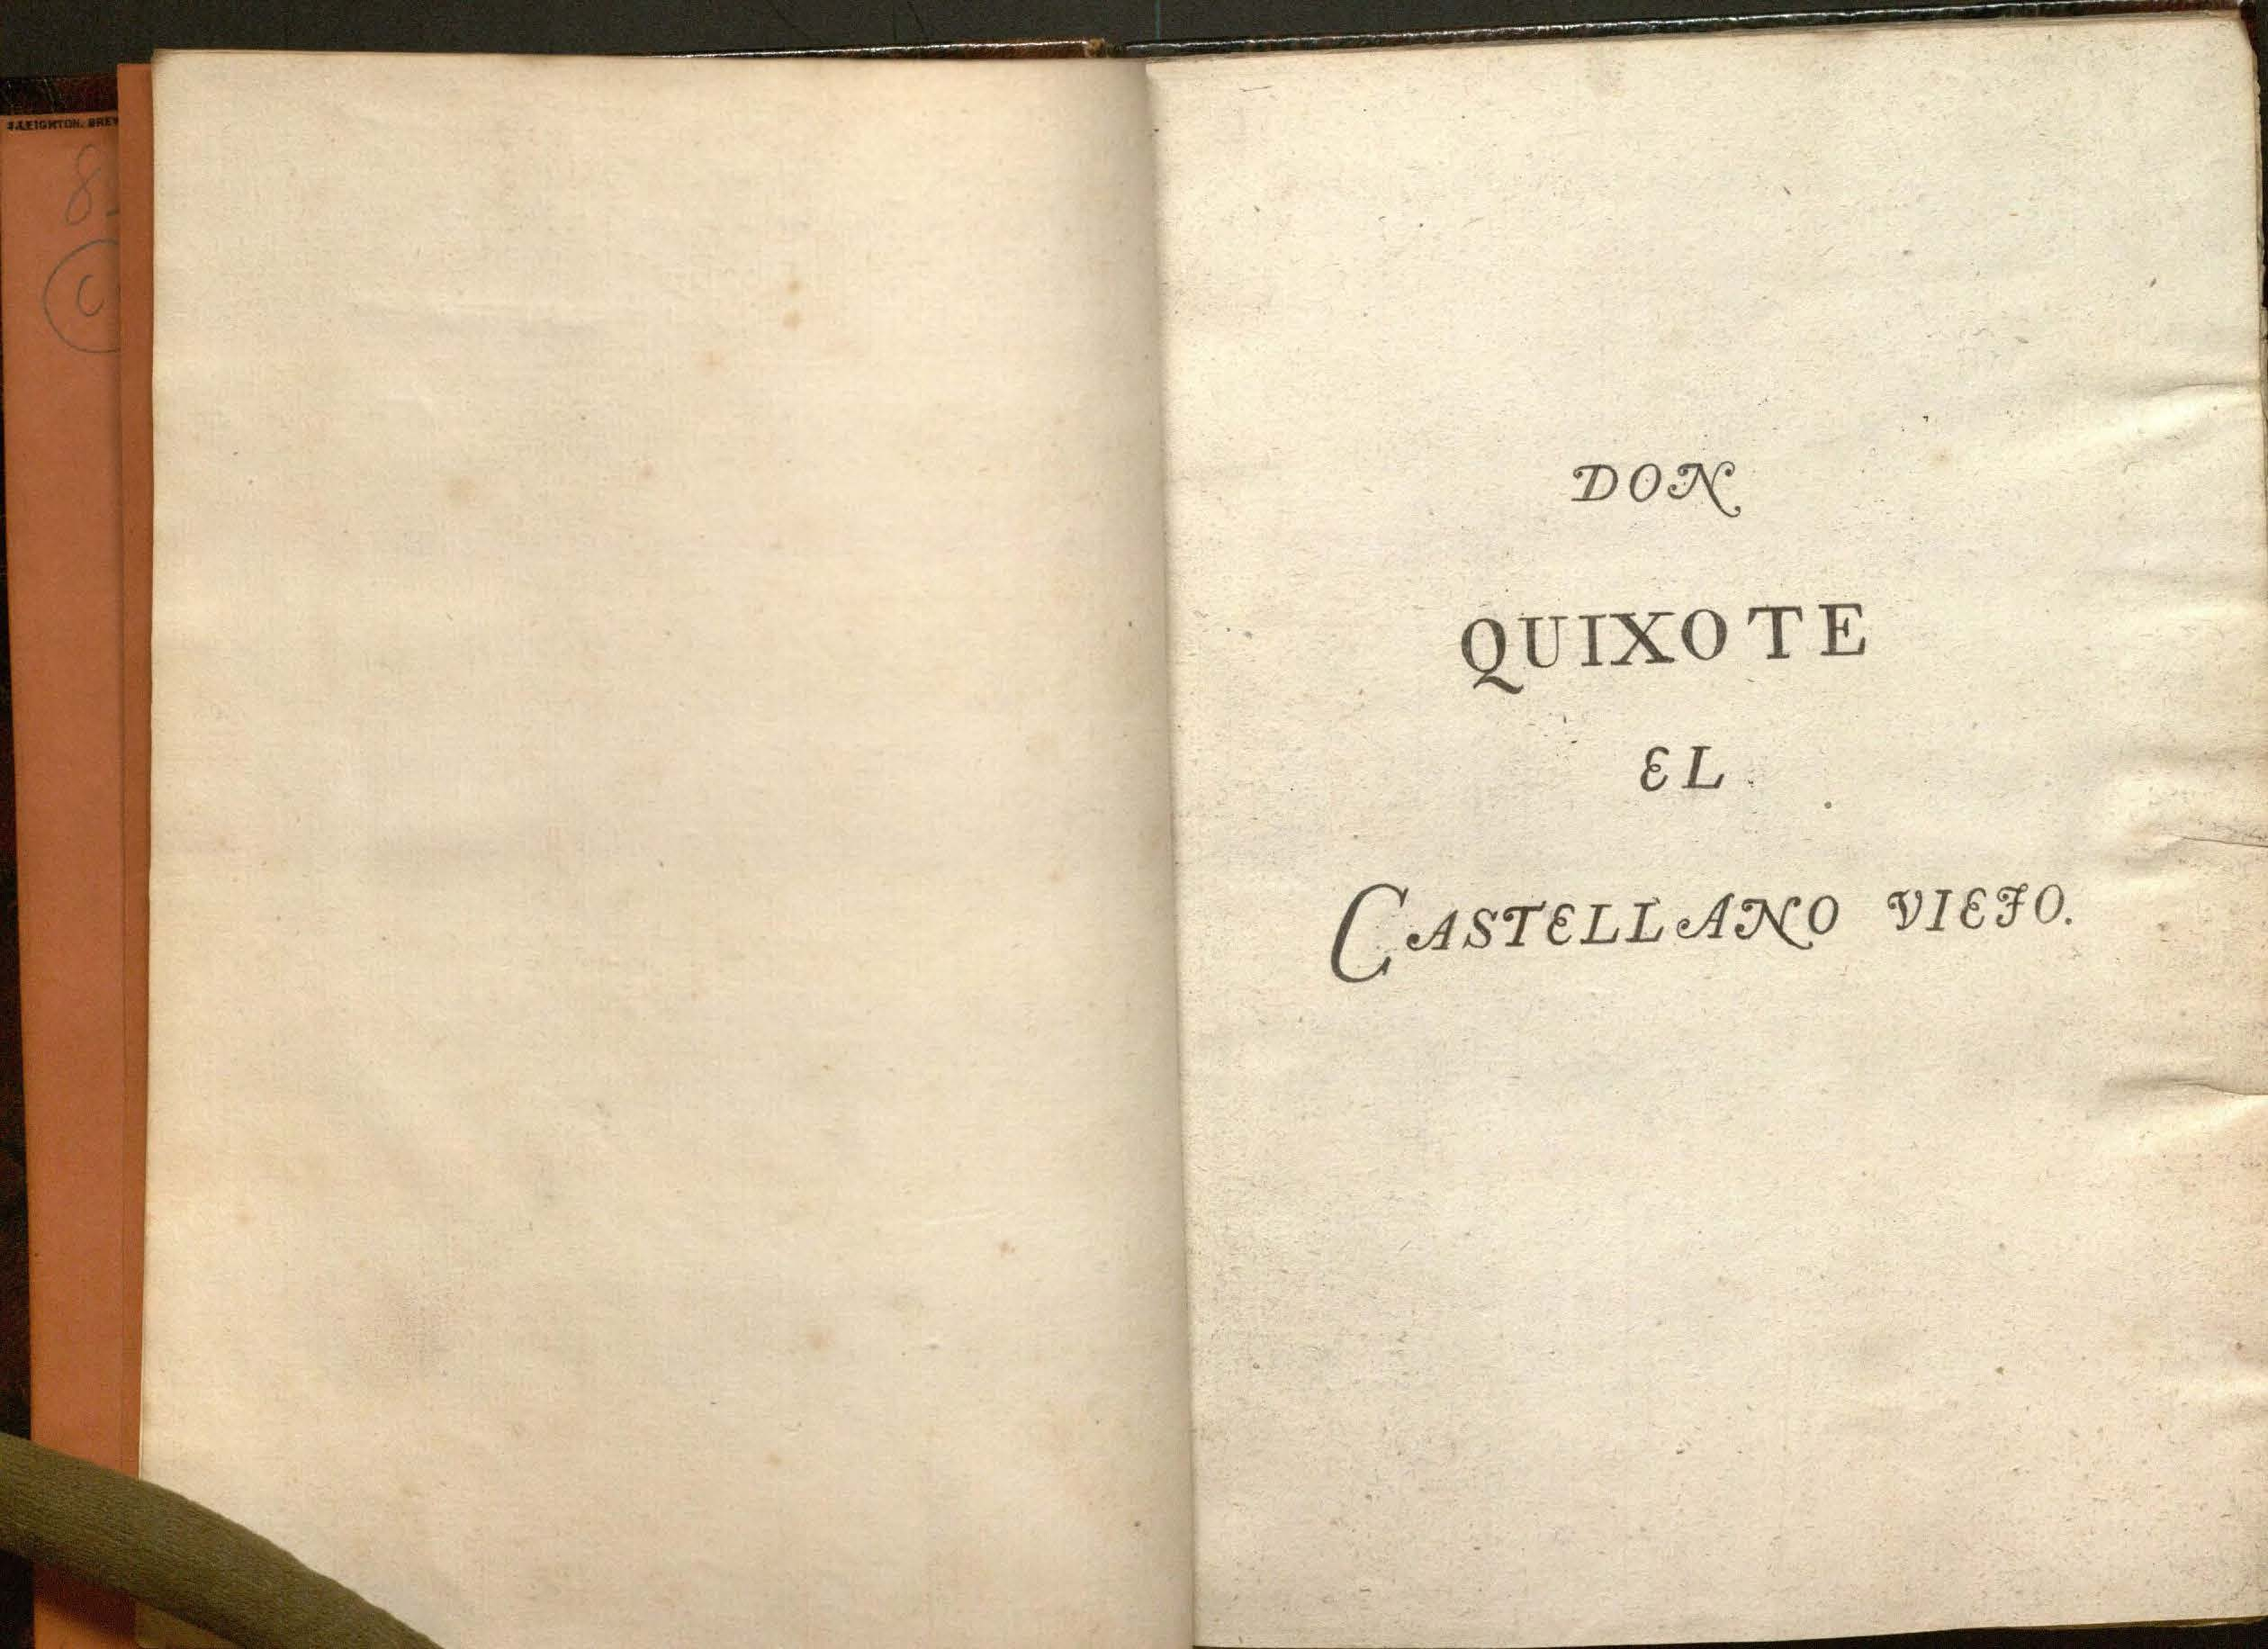 Image of the title page (in a different hand?) giving the title, Don Quixote, el Castellano viejo